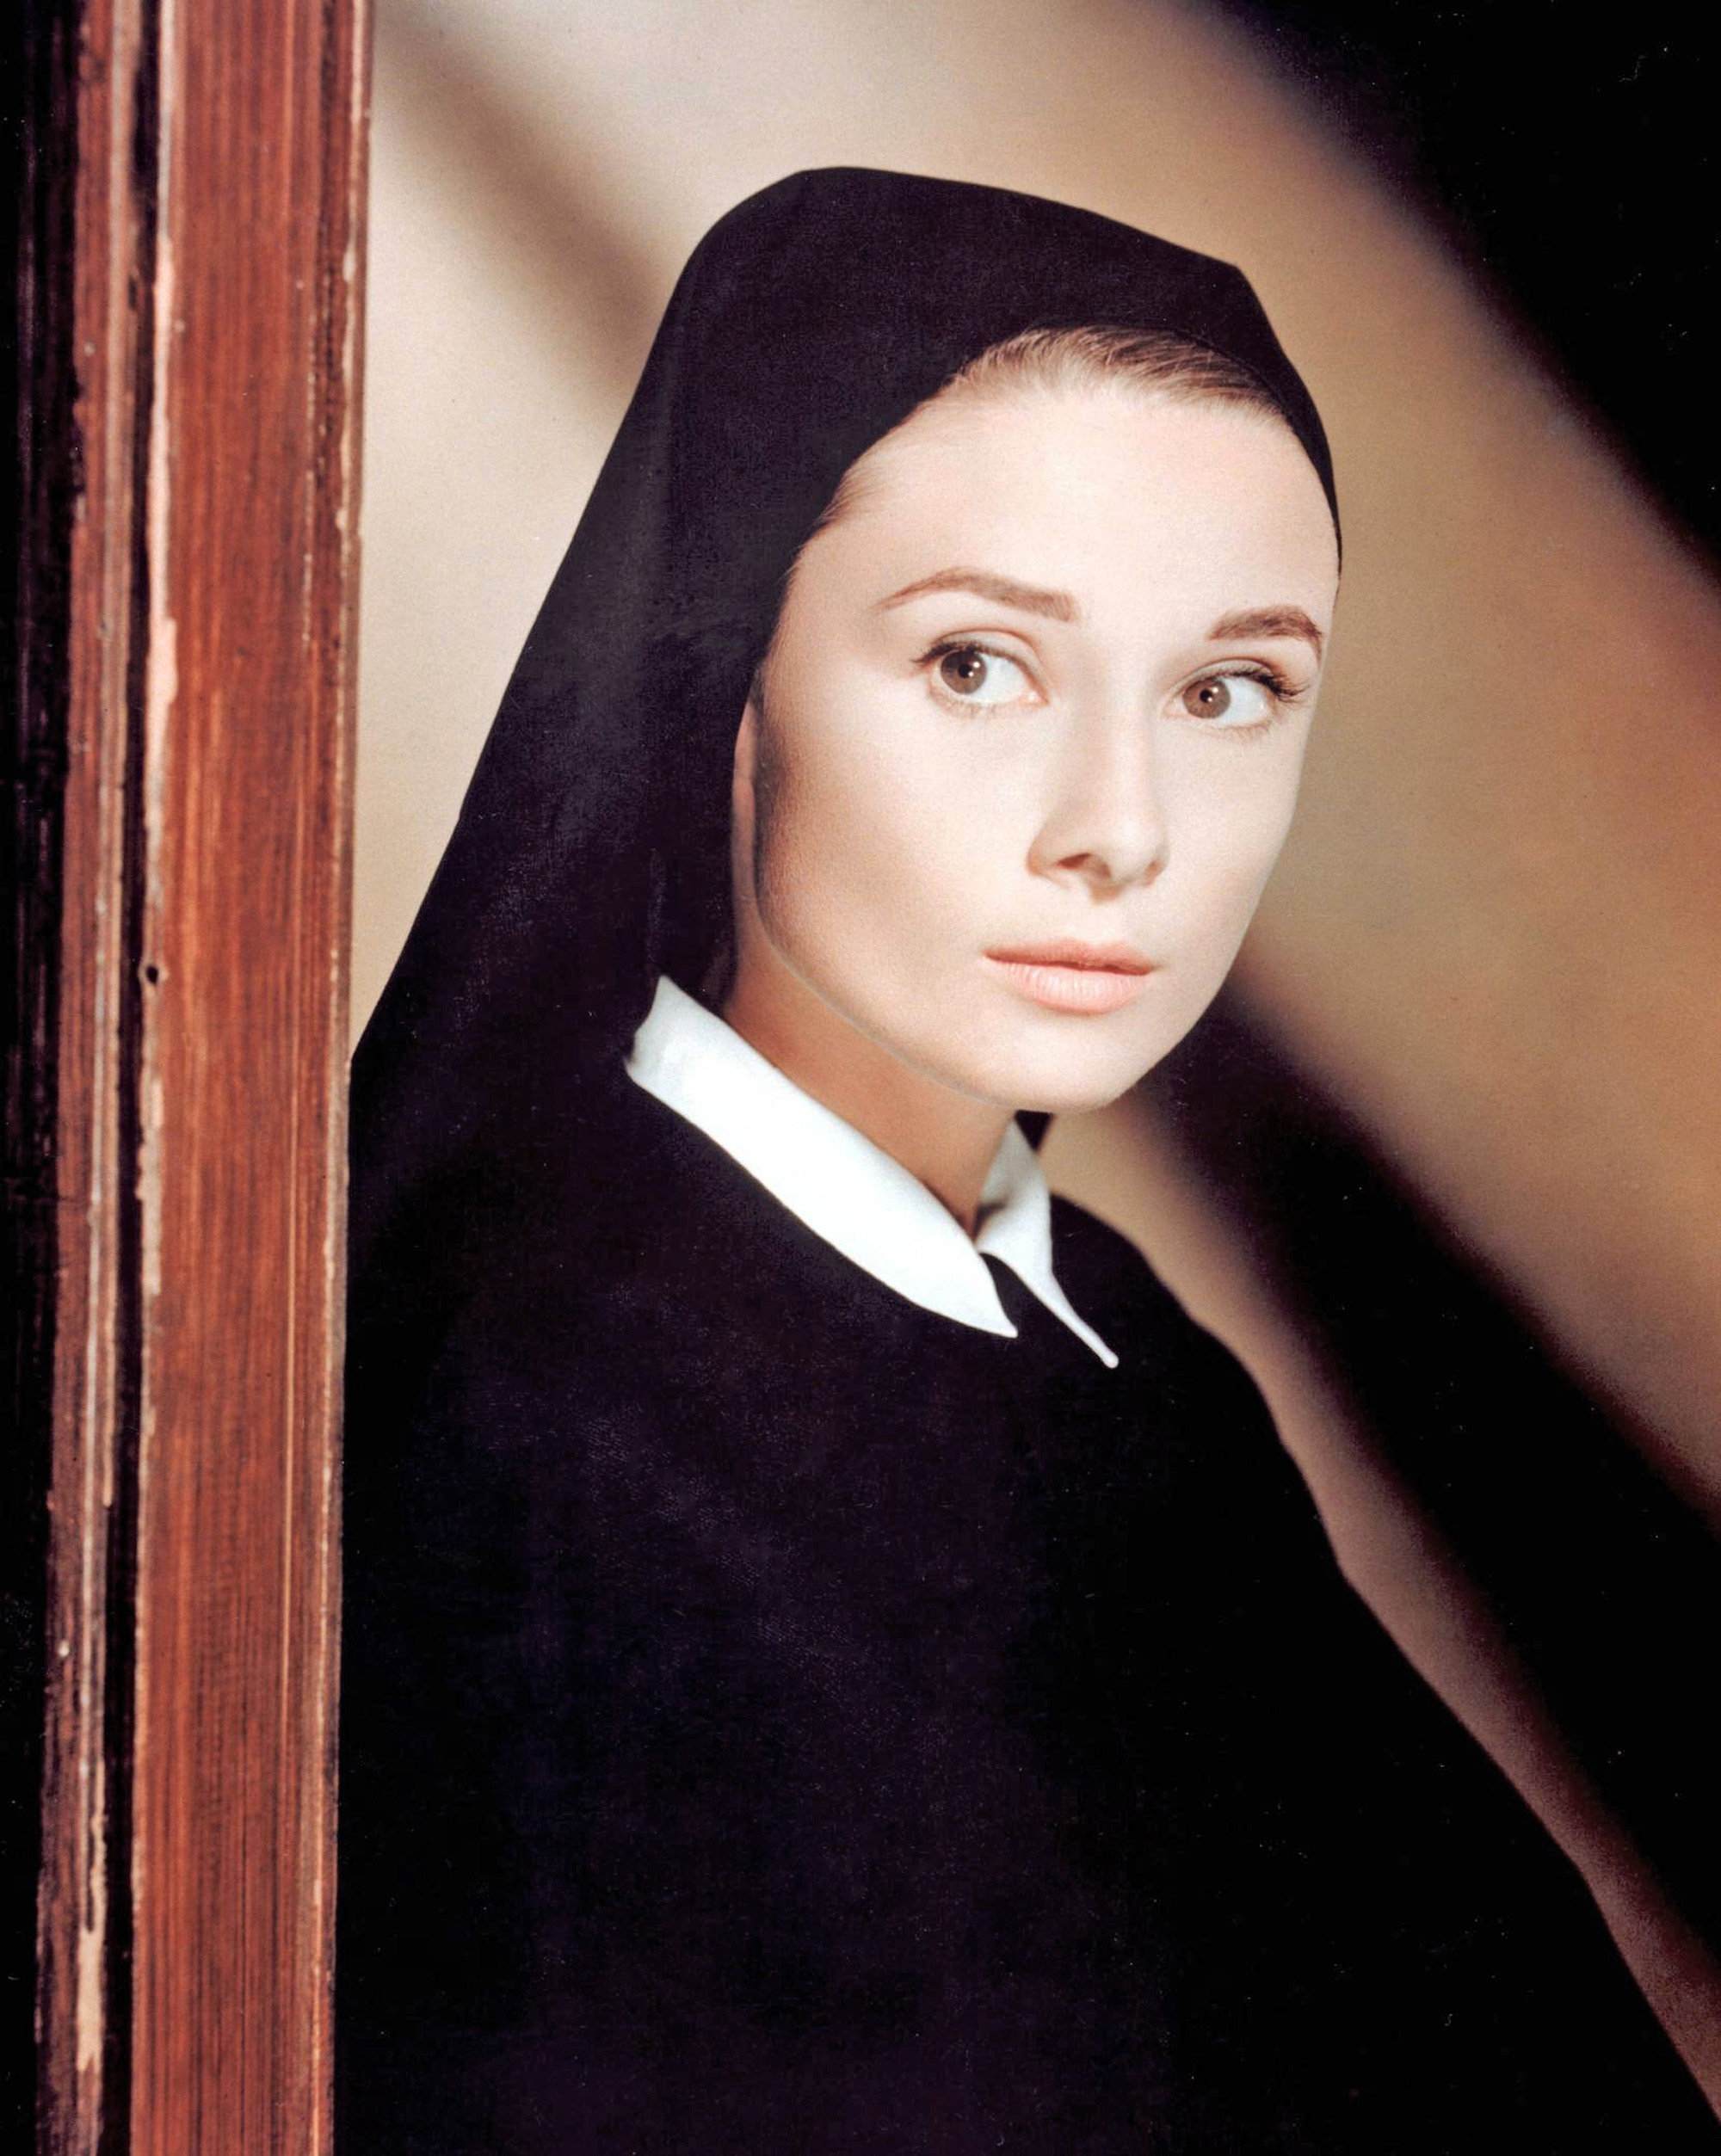 Audrey Hepburn The Nuns Story 1959 Directed By Fred Zinnemann on Music Word Search